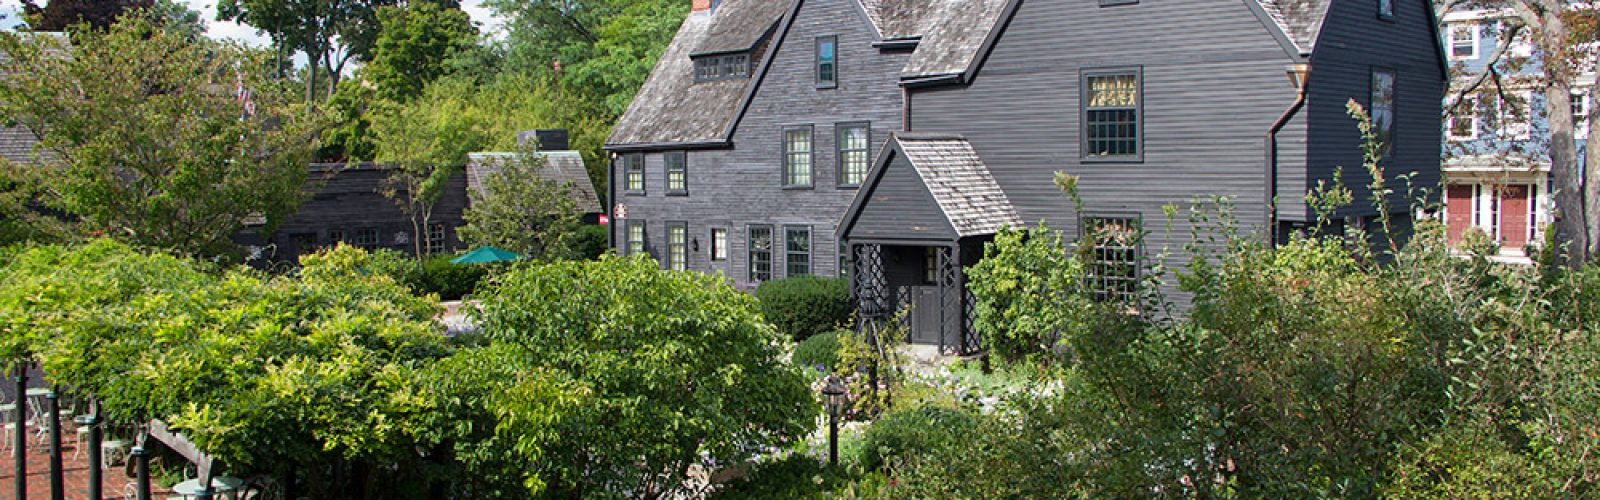 View of the House of Seven Gables from the Garden on a sunny day.